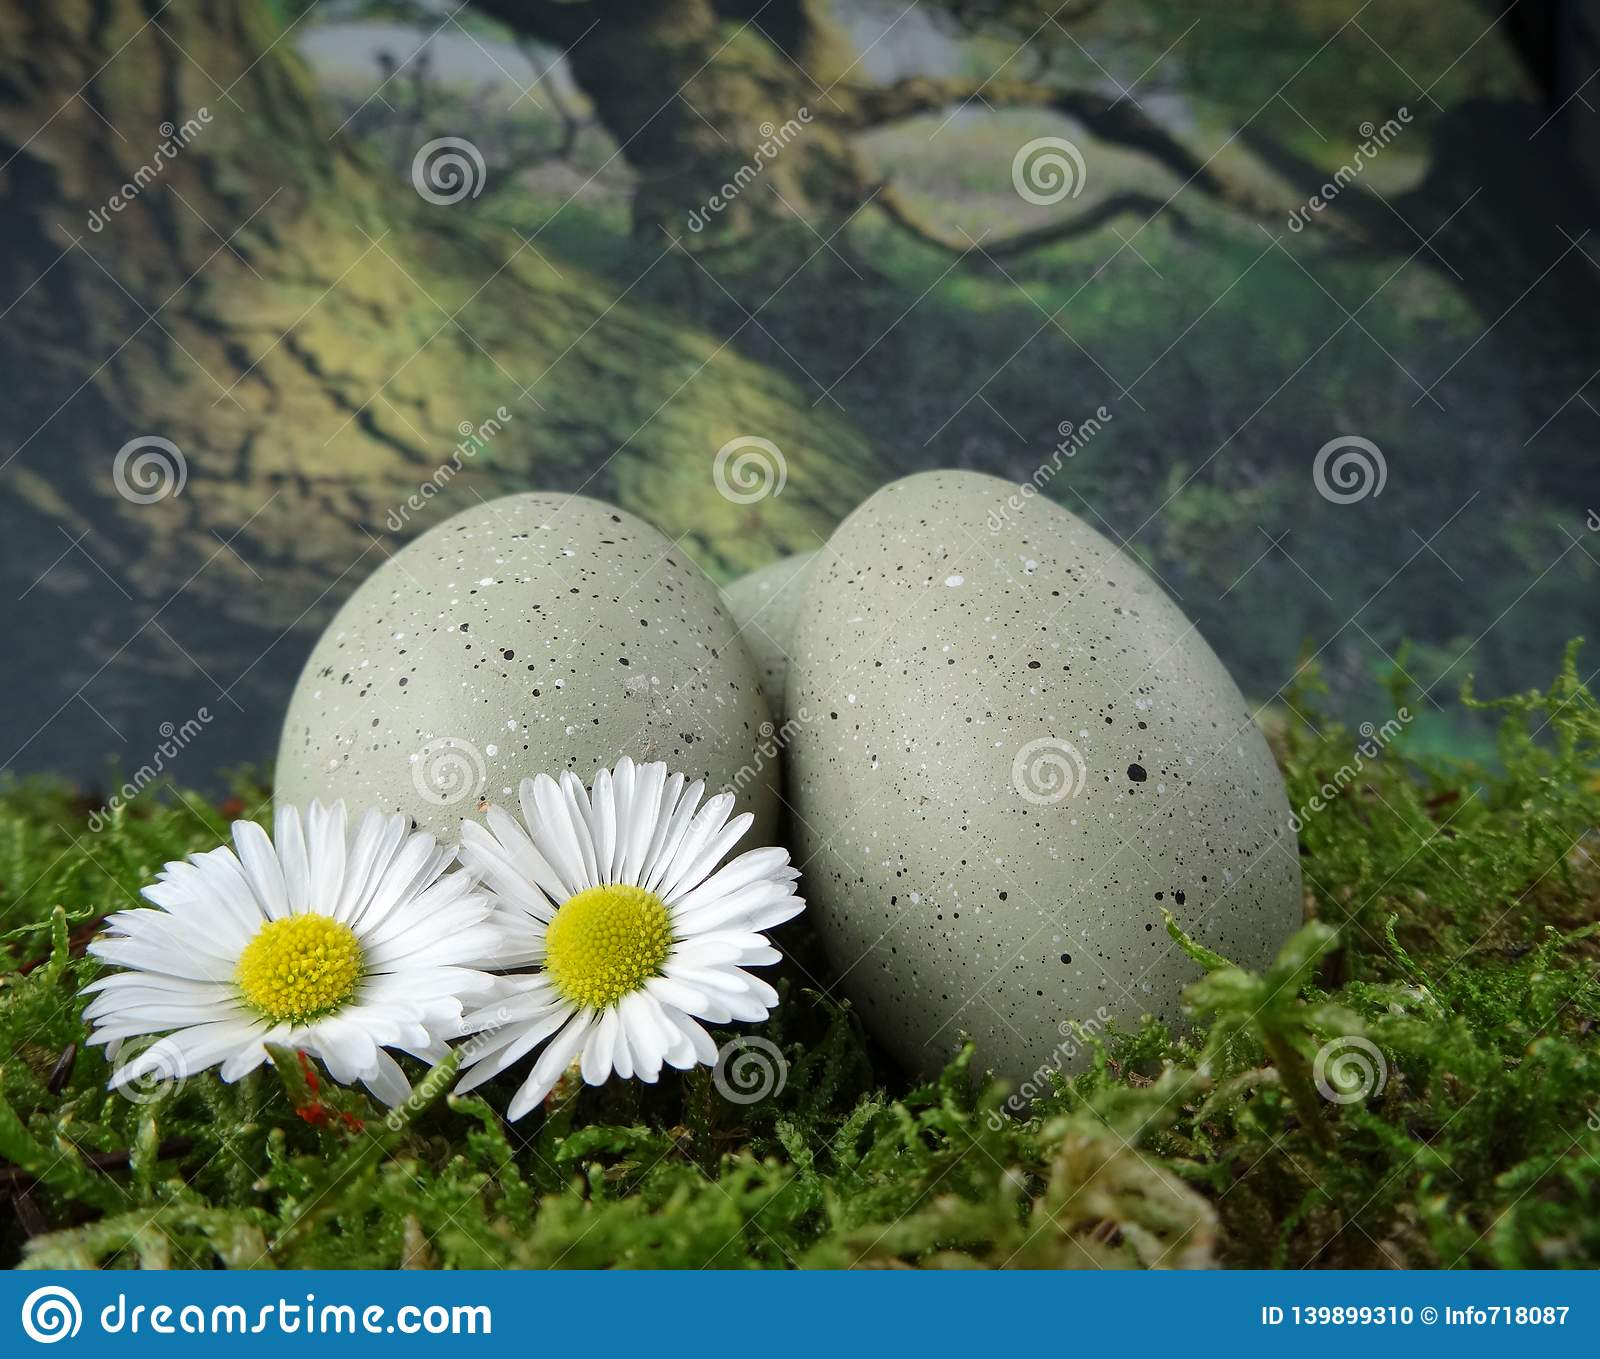 Stone eggs on natural moss ground with daisies